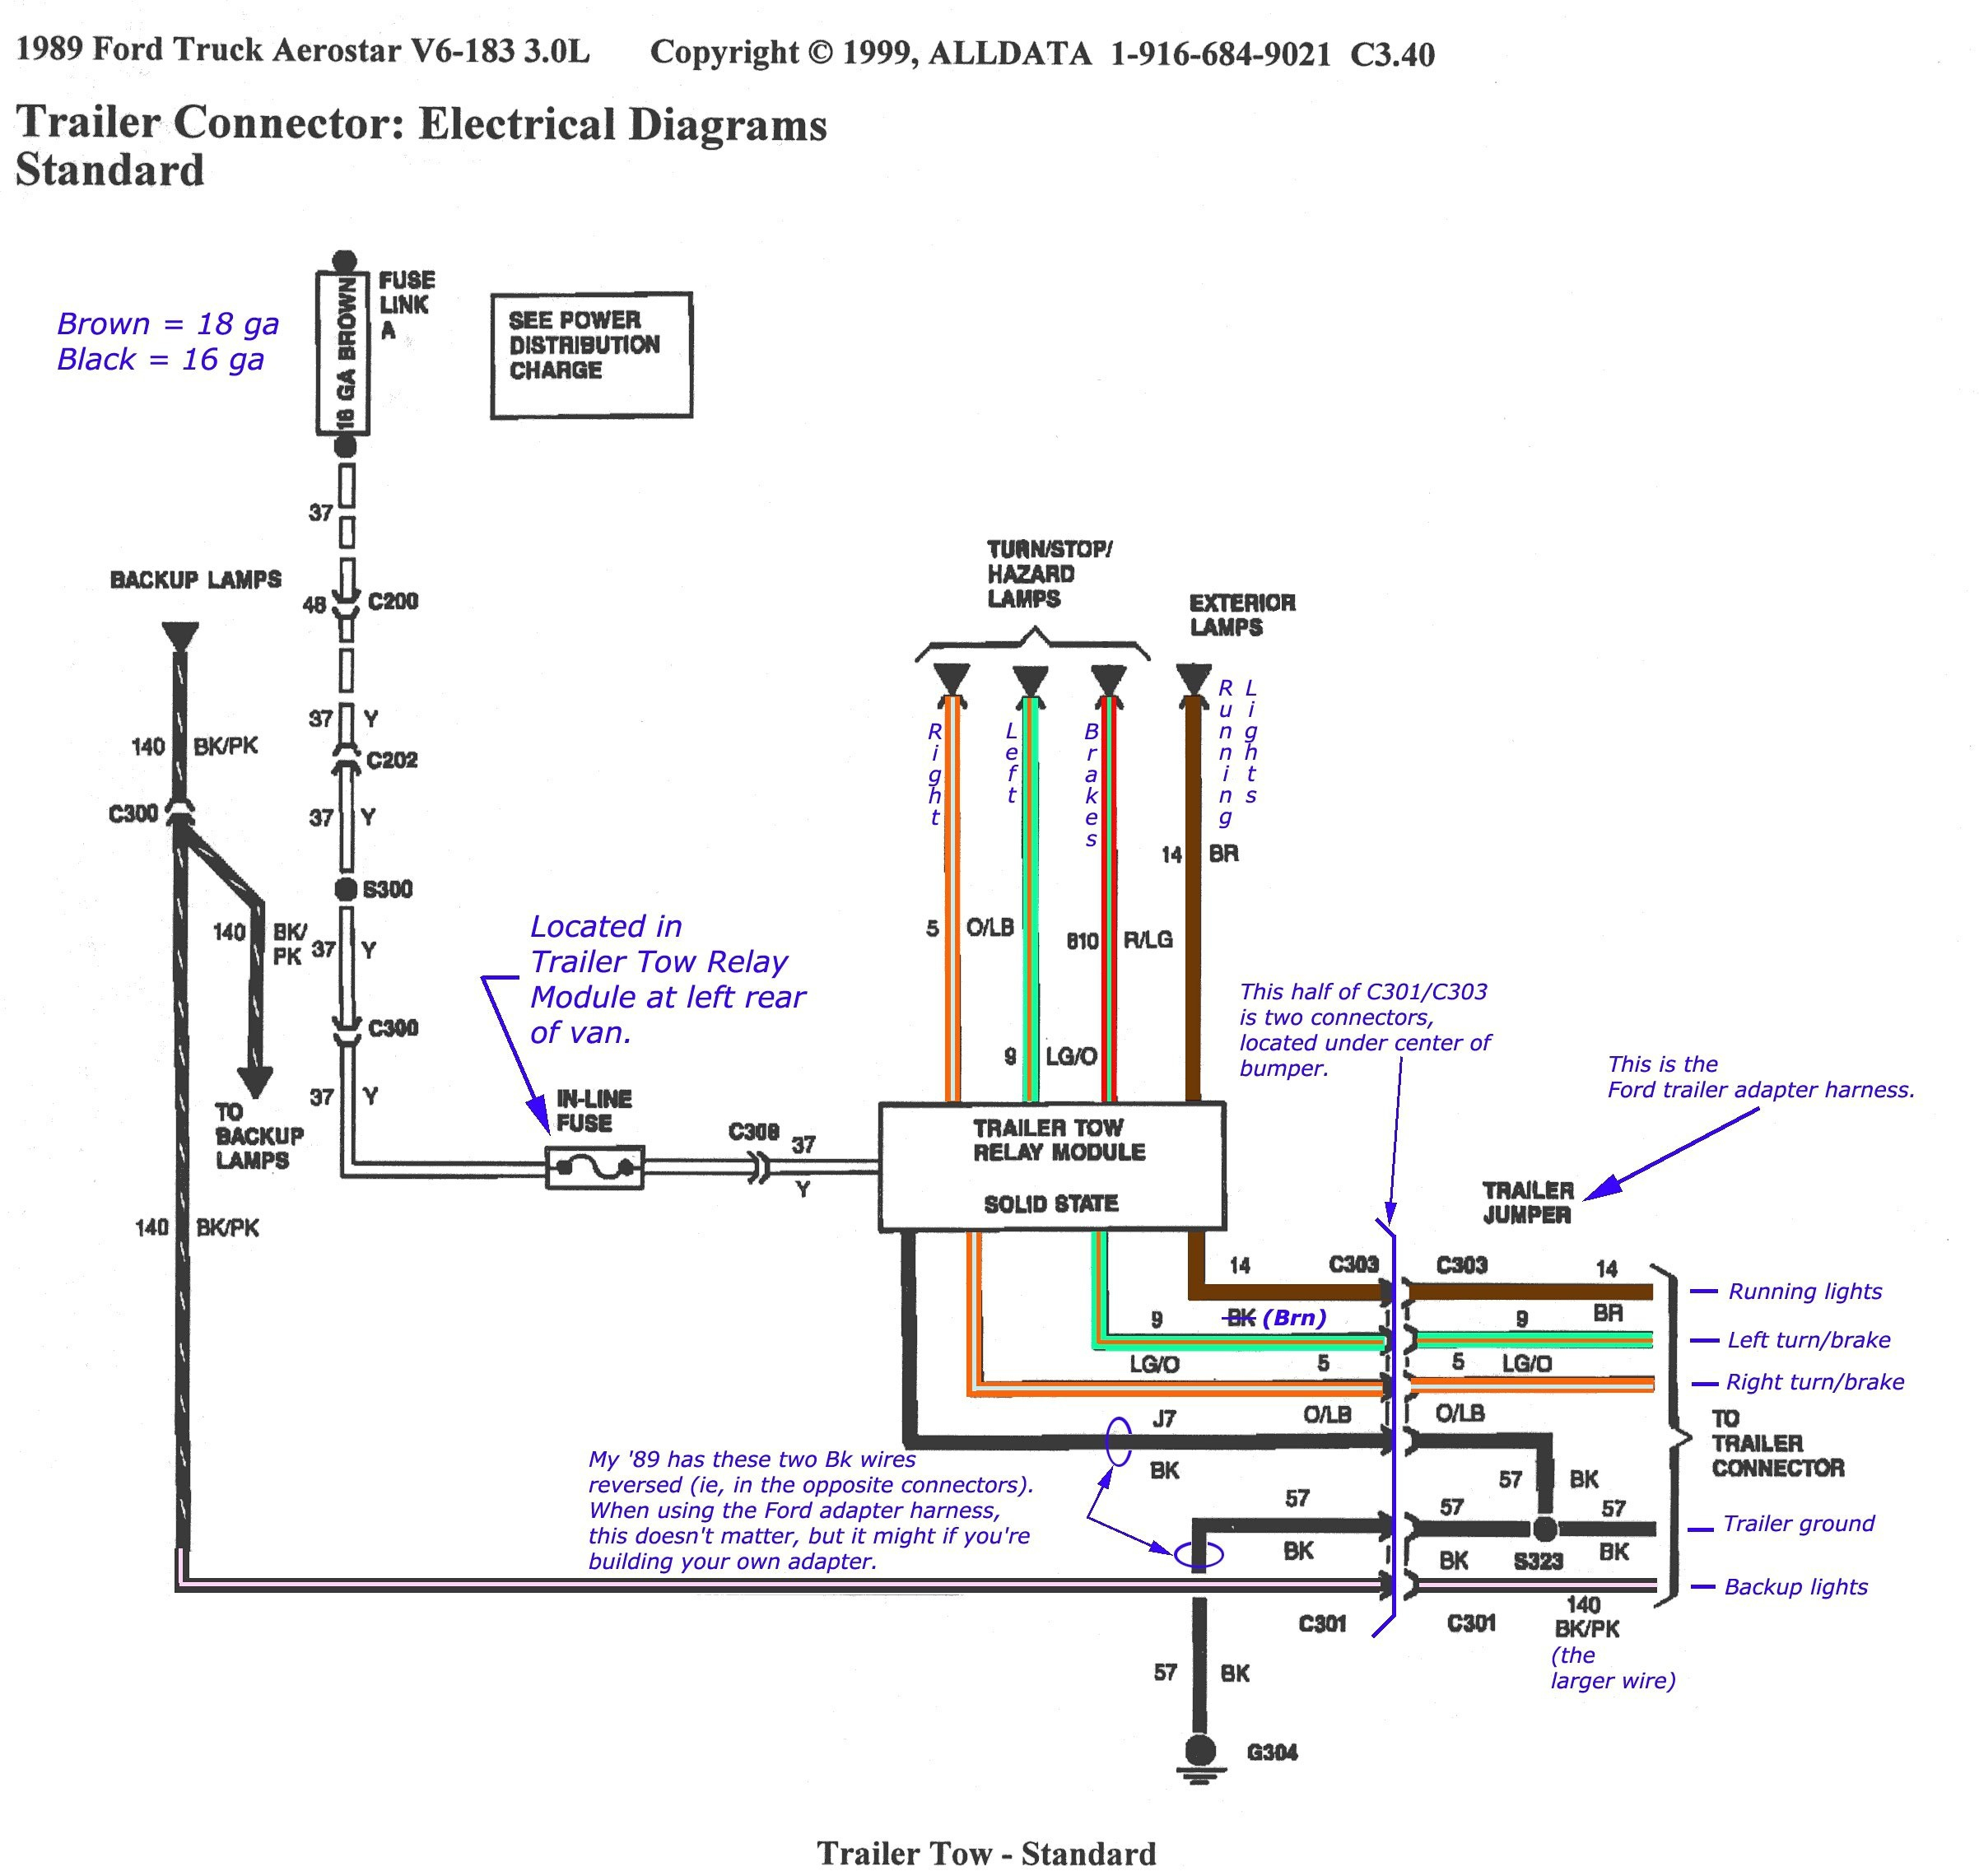 Hgv Trailer Wiring Diagram Uk | Manual E-Books - Hgv Trailer Wiring Diagram Uk